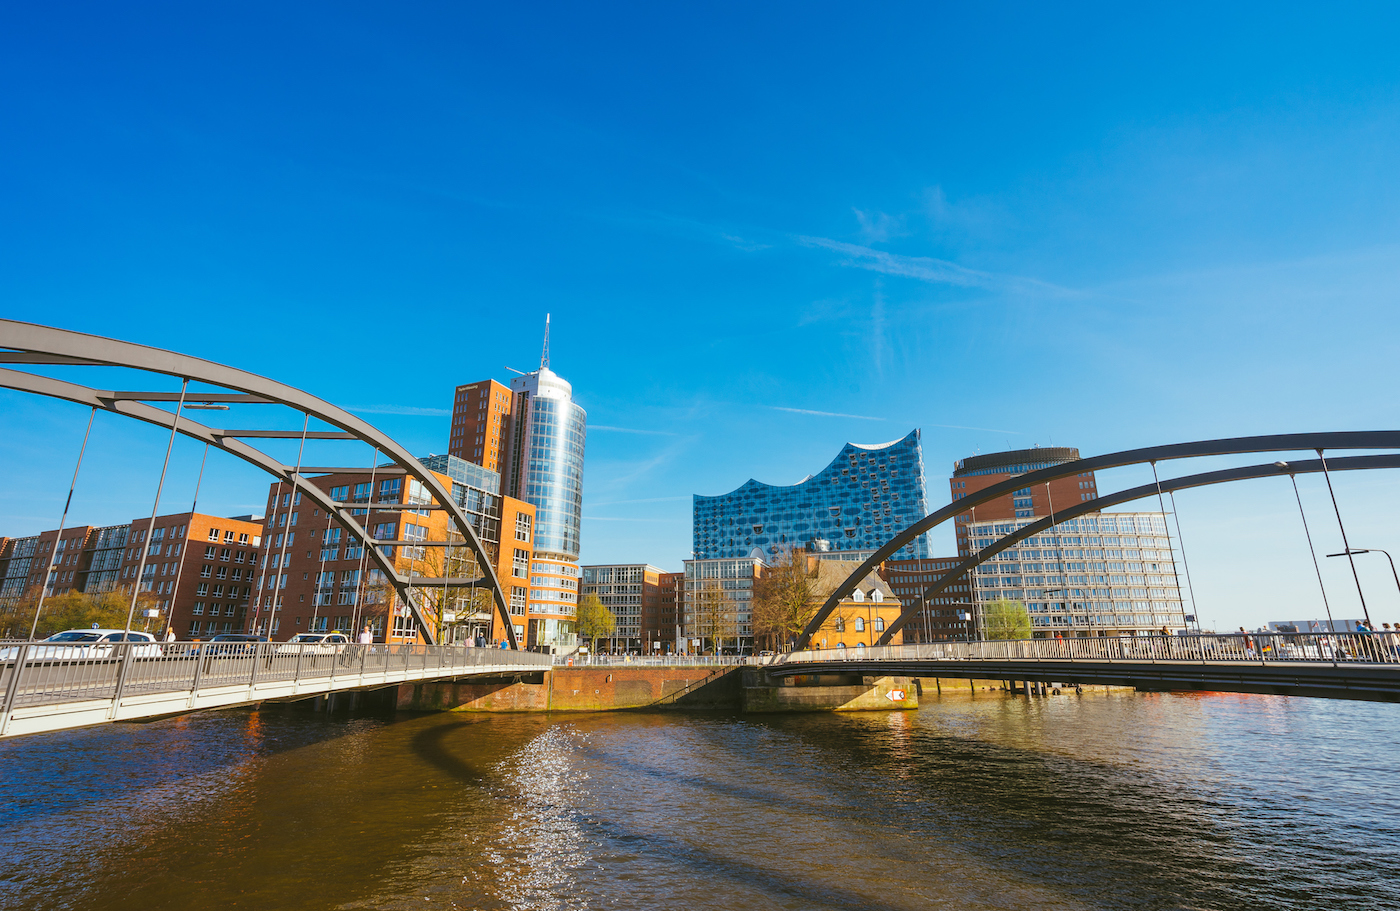 Food Ingredients Company, HafenCity, Speicherstadt: Panoramic view in front of the modern Elbphilharmonie building with Niederbaumbrucke Bridges in foreground